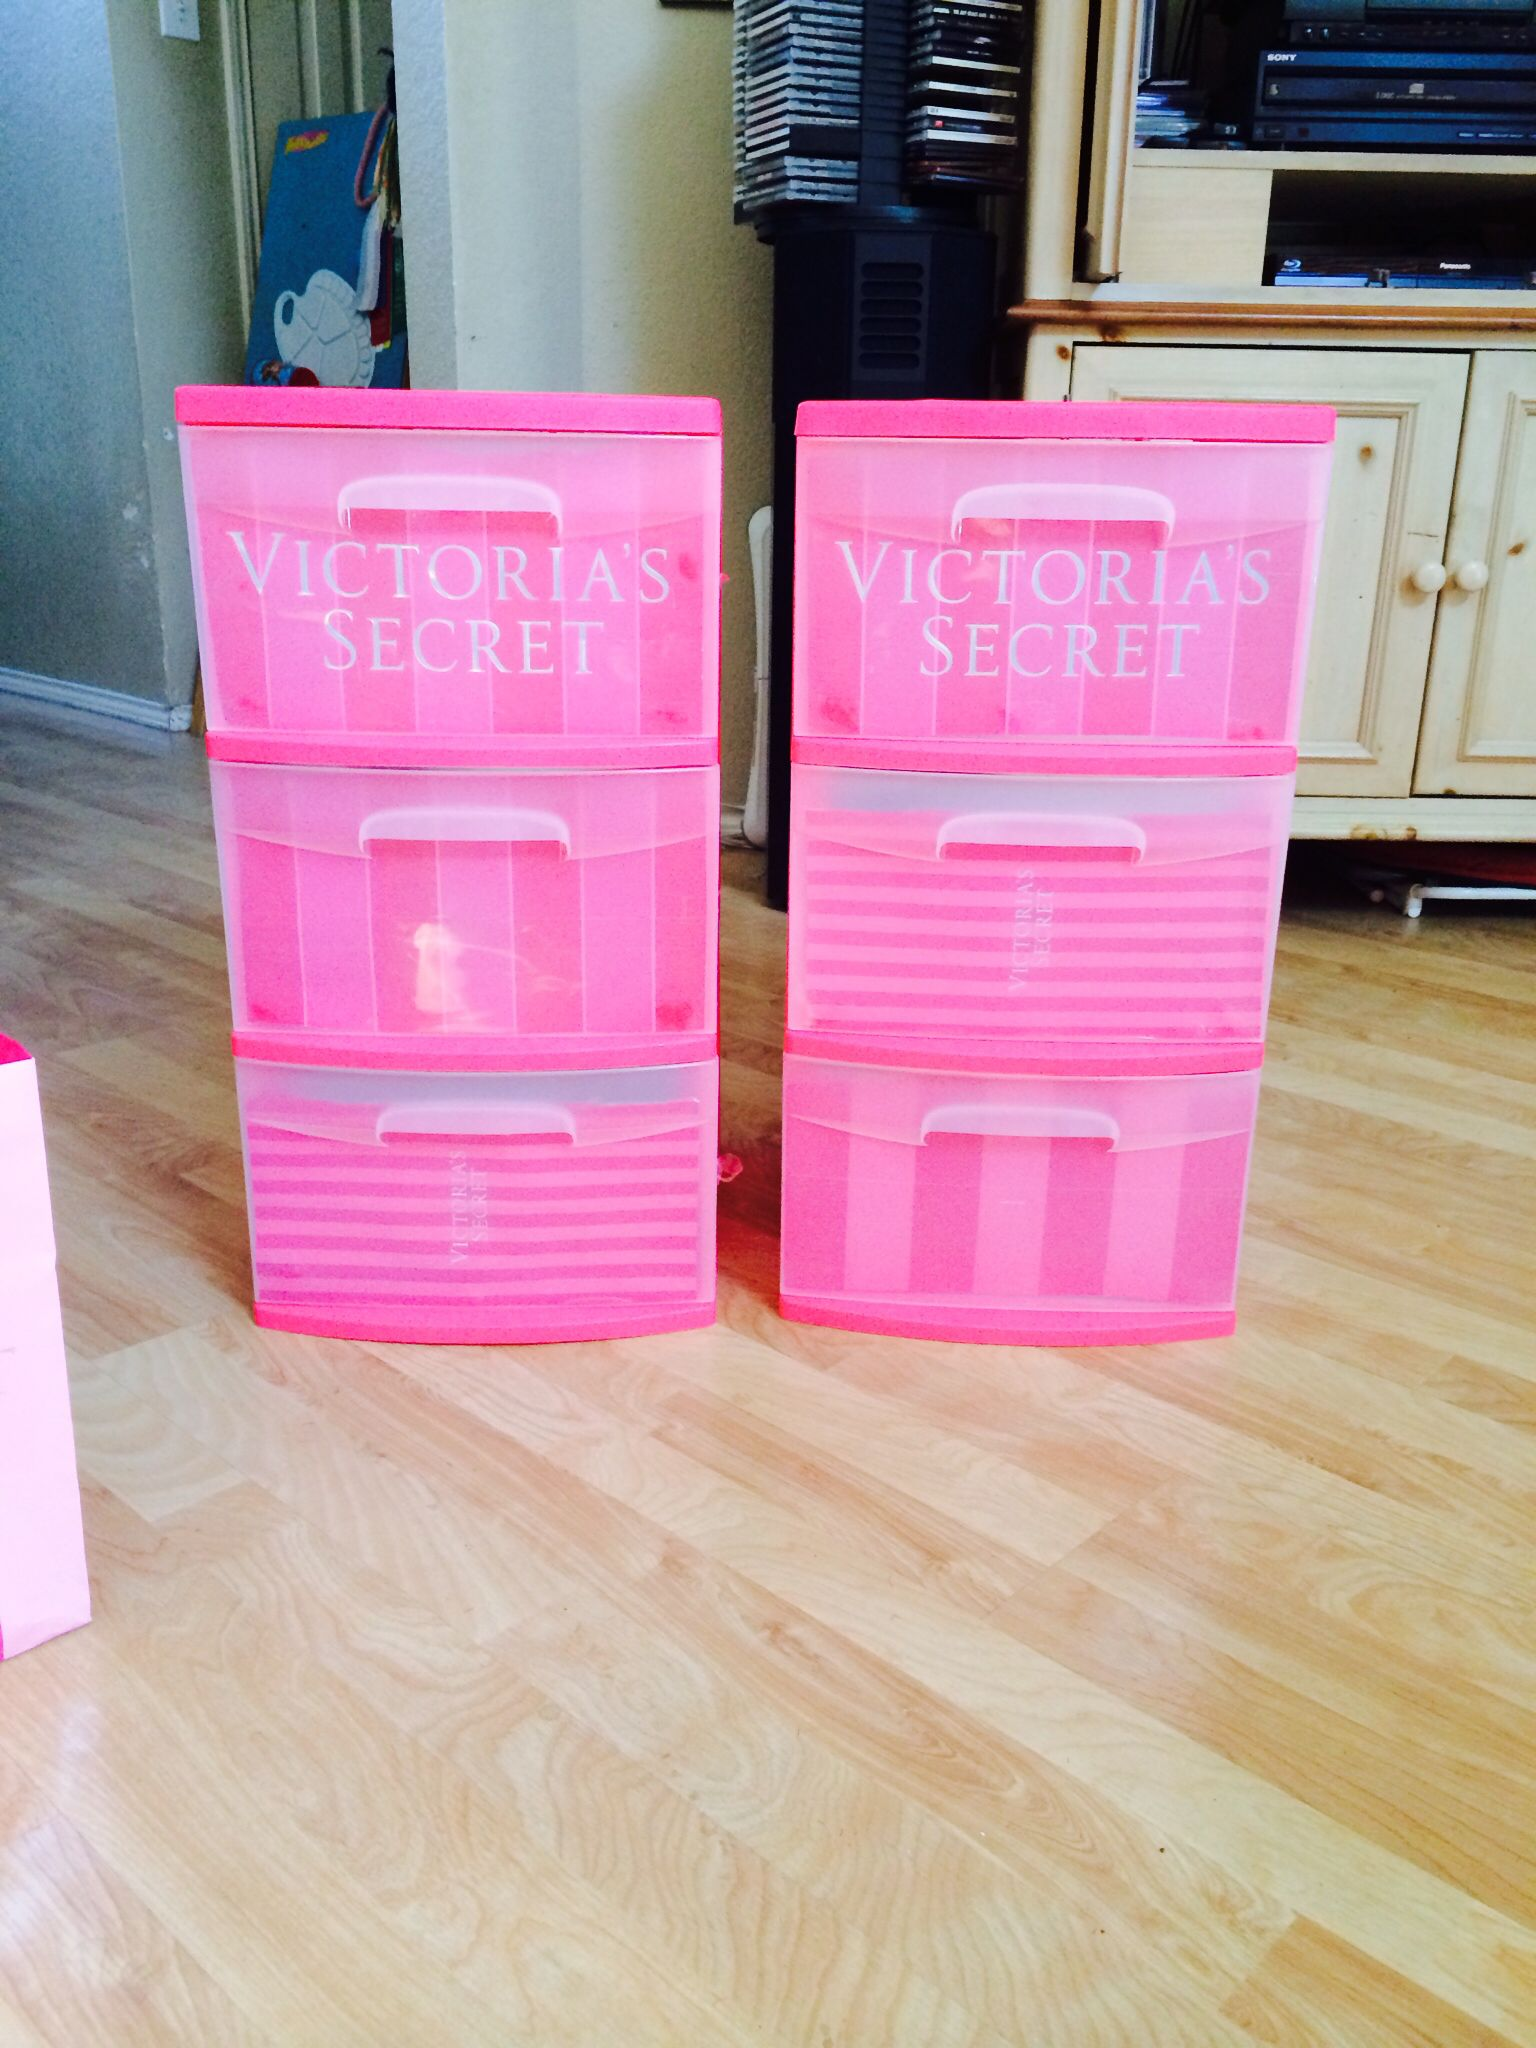 Victoria Secret Bags Used To Make Bins For College